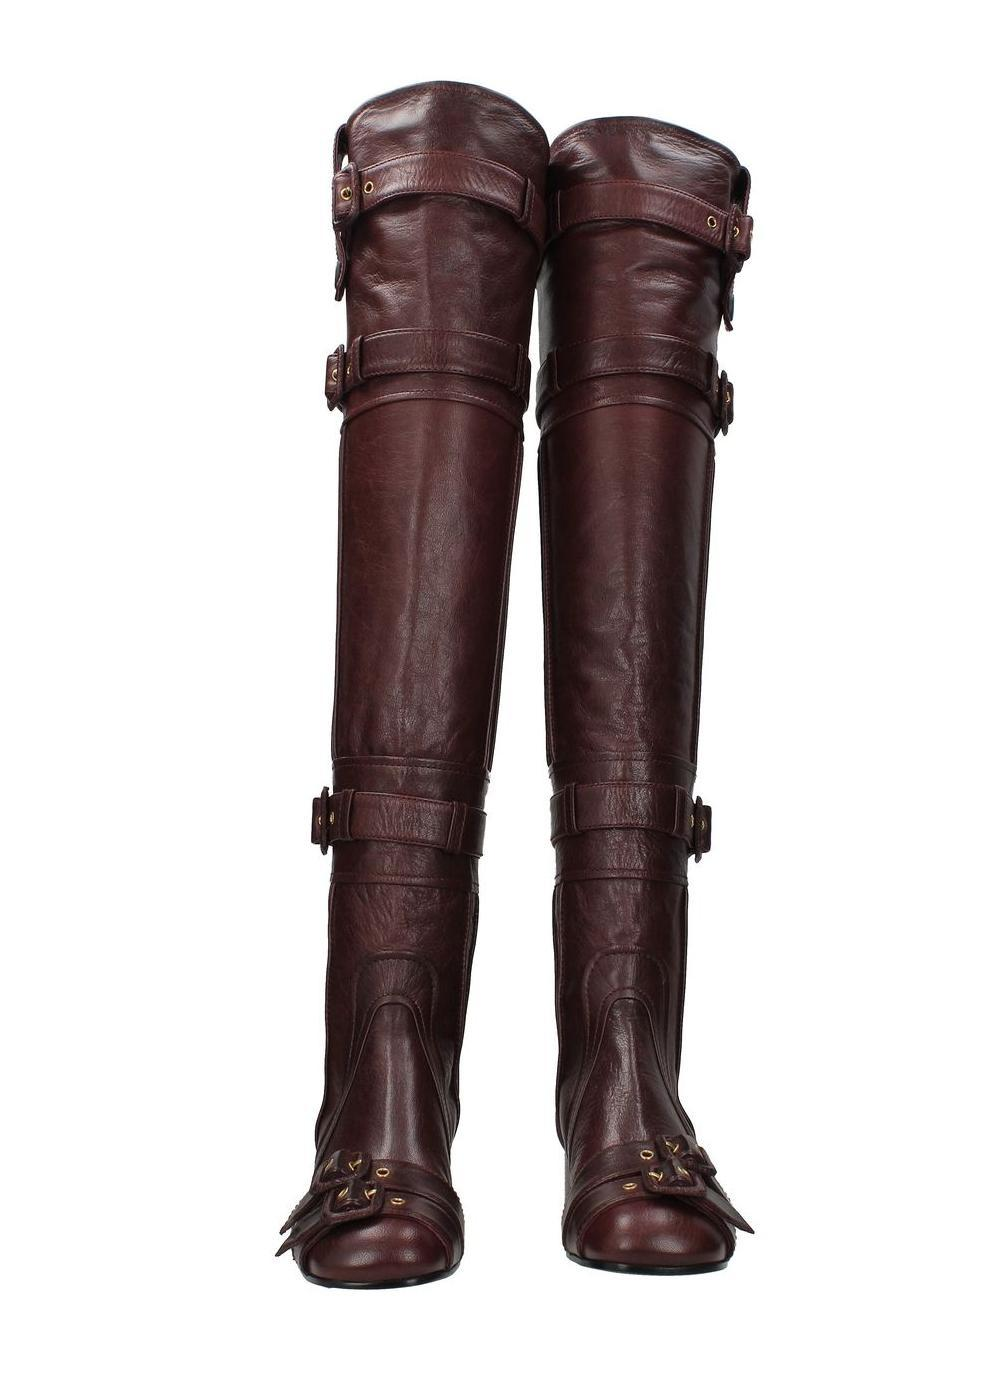 1ec535193fce US 6 Prada Red Leather Boots Booties Size EU 36 36 36 (Approx. US 6 ...